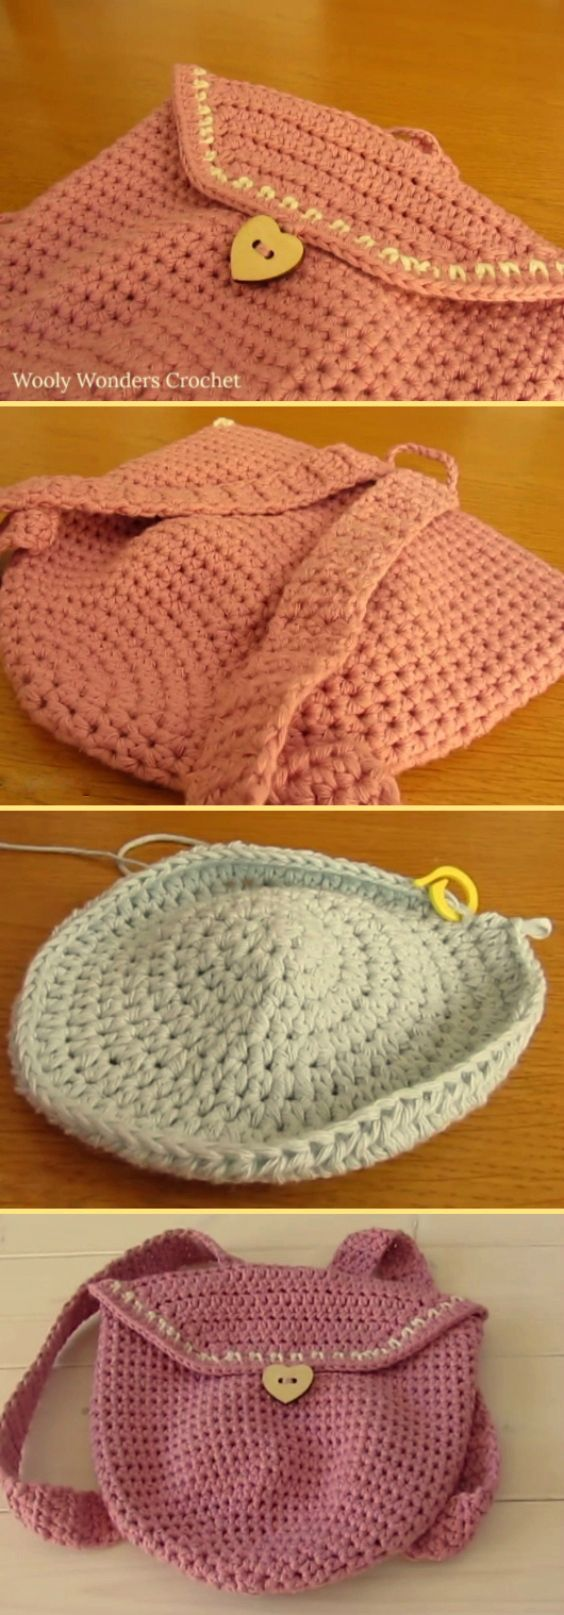 This step by step tutorial will show you how to crochet a mini backpack / bag / purse. This backpack is suitable for beginners